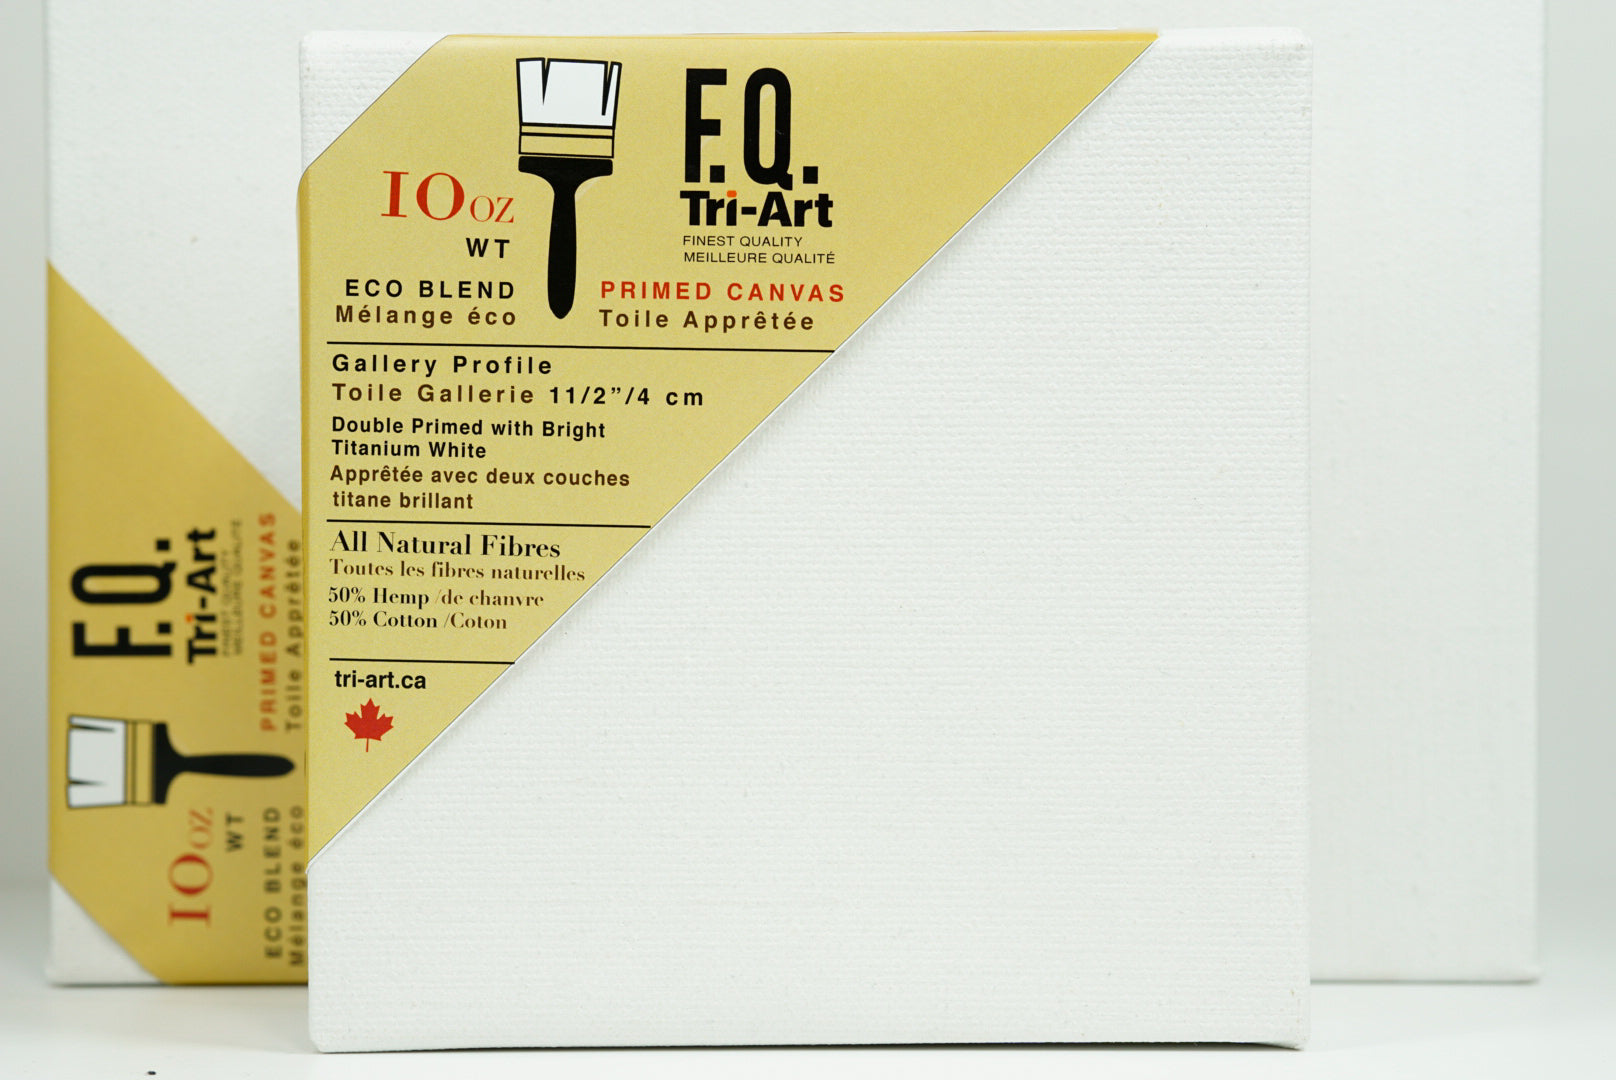 "Tri-Art FQ Stretched Canvas - Artist Gallery 1 1/2"" Profile Primed - 48x48"" (4438790176855)"